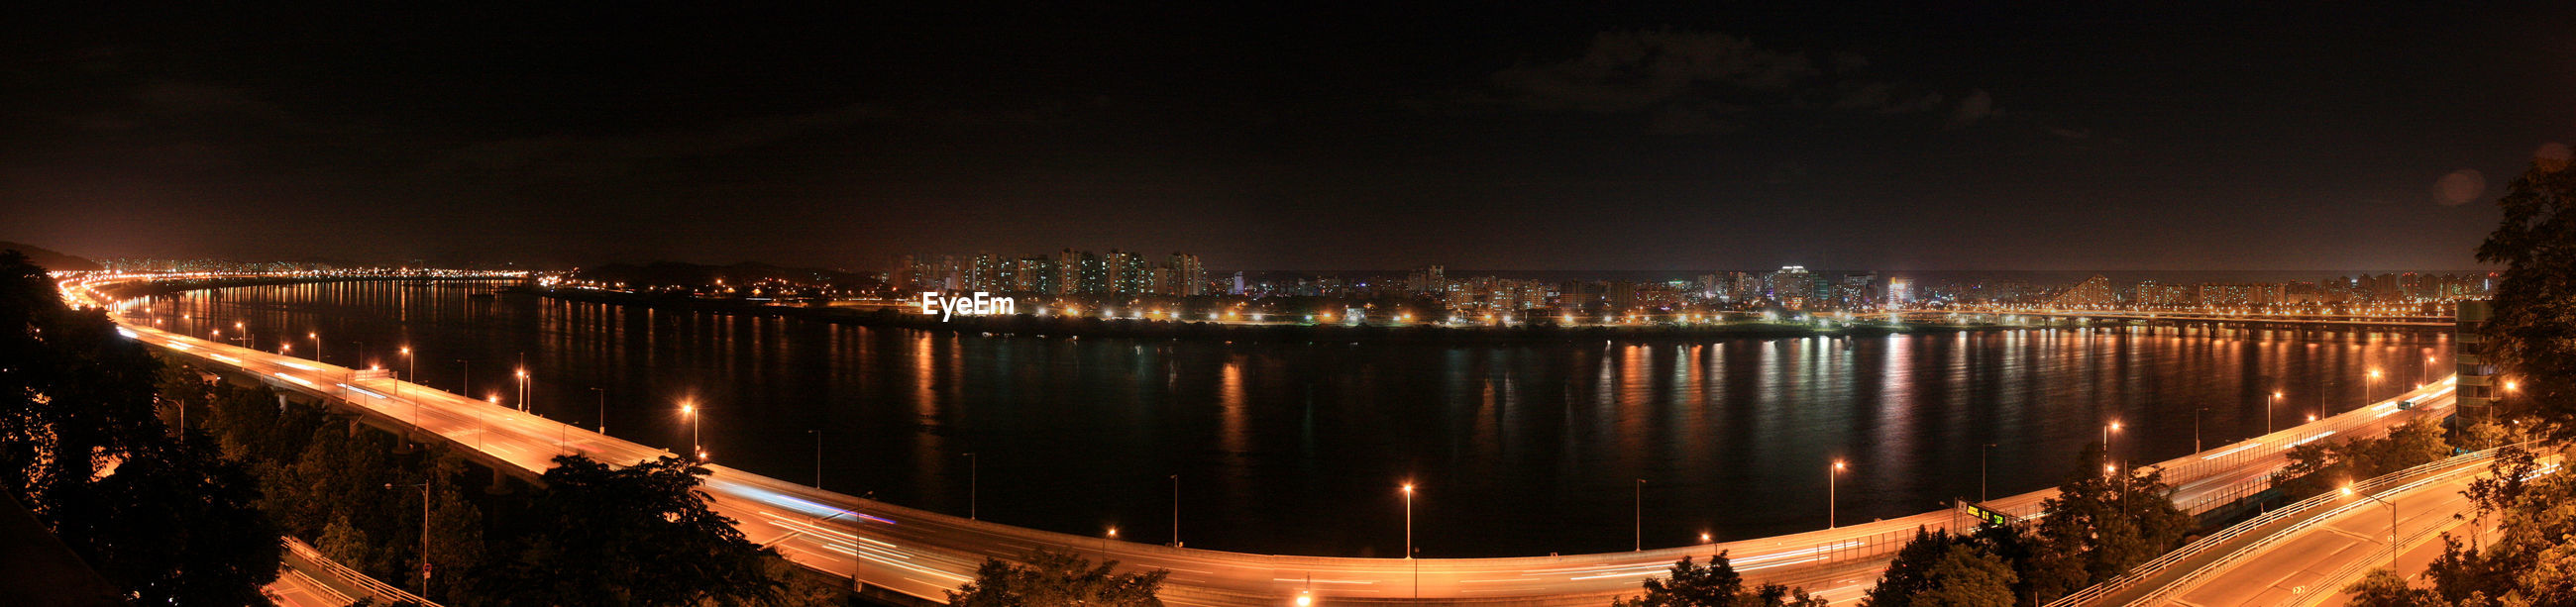 Panoramic view of river against sky in illuminated city at night